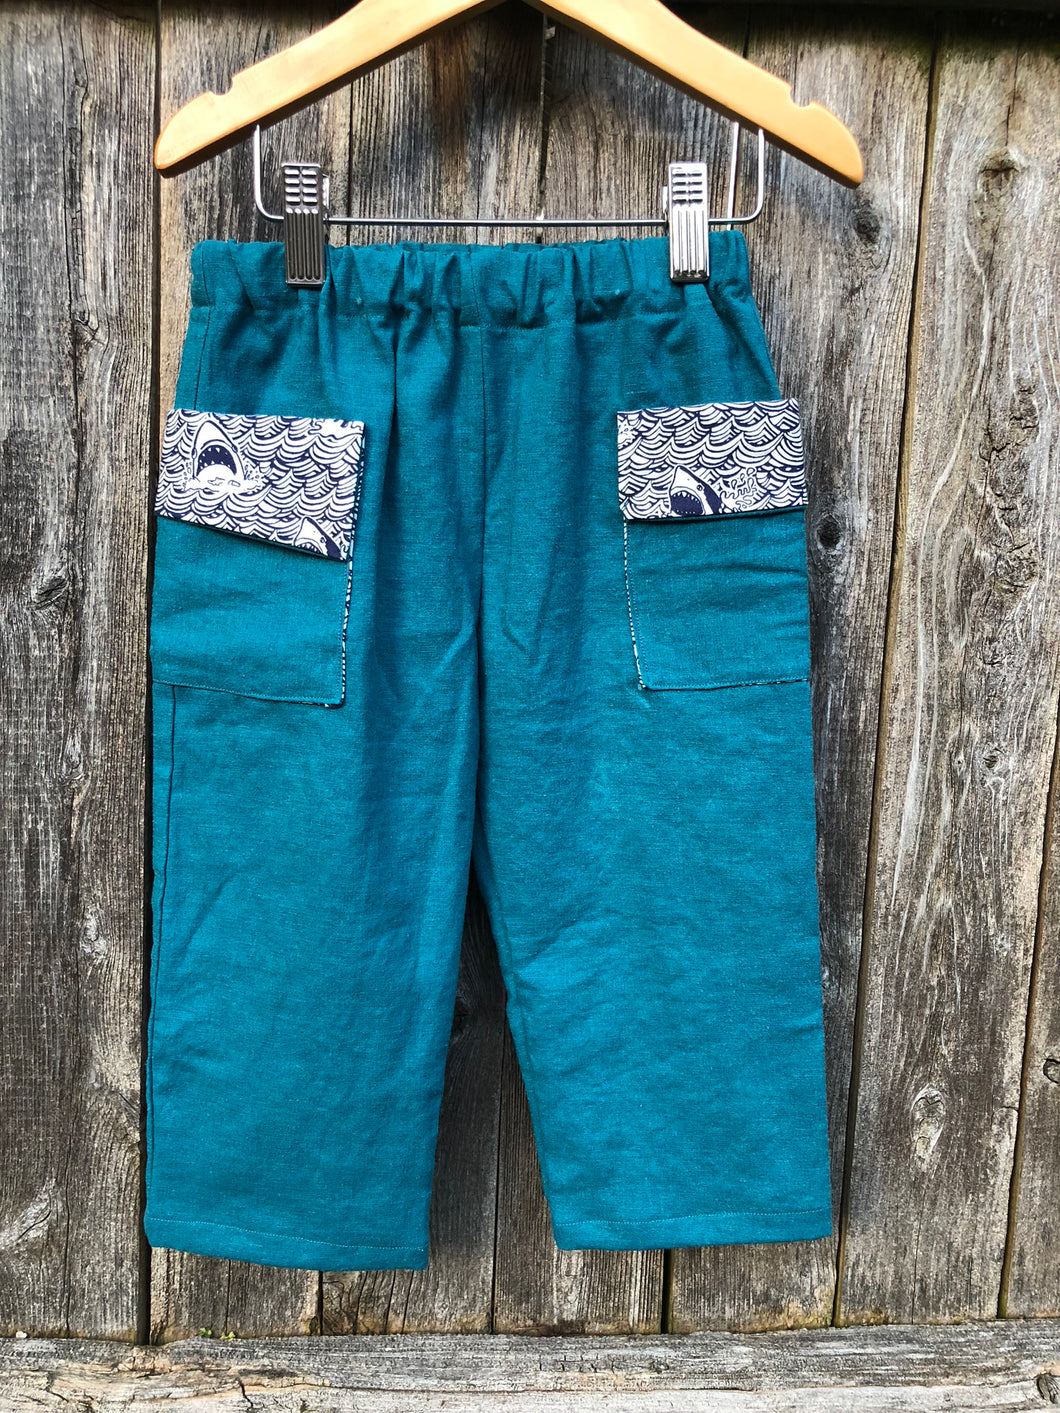 Lennox Pants - Teal Linen Blend w/ Shark Pocket